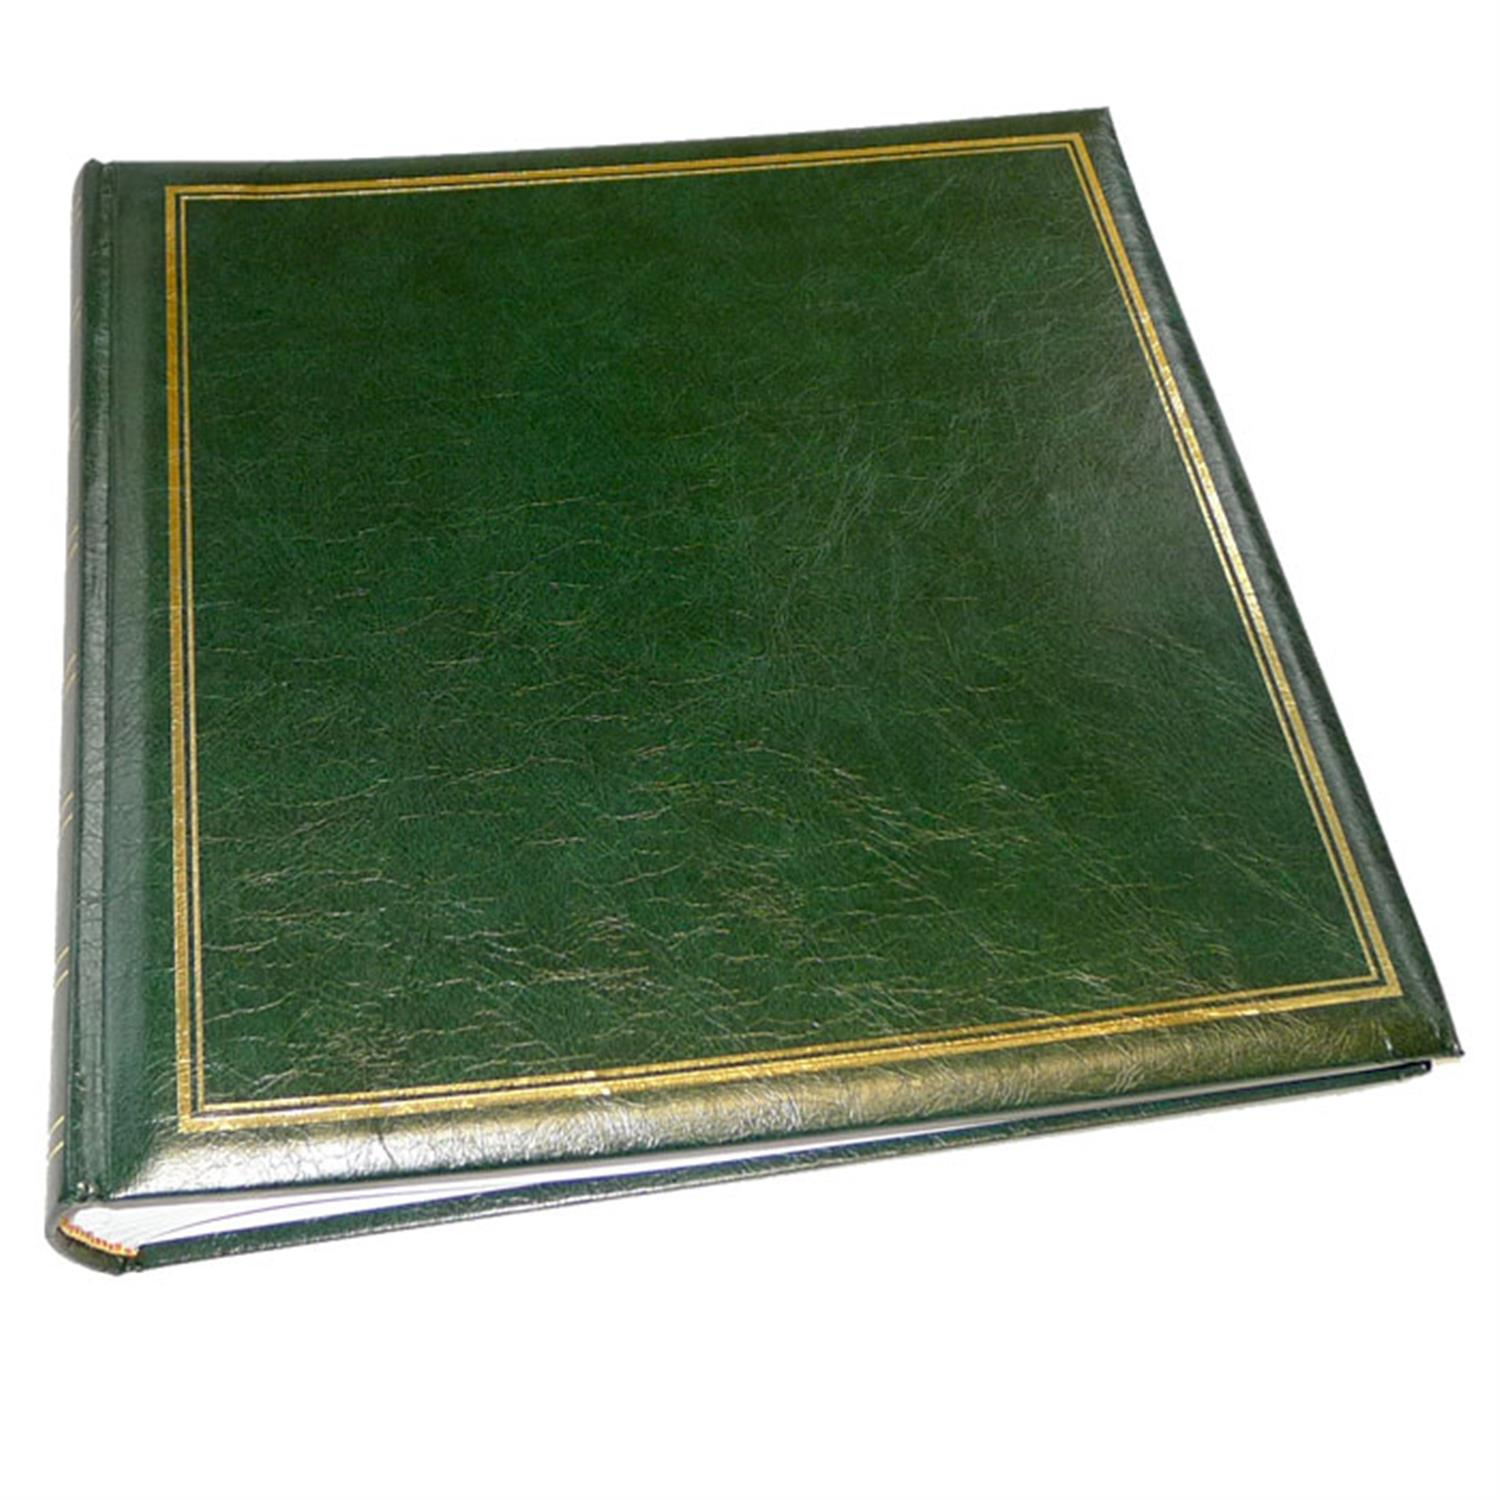 Dorr Classic Large Green Traditional Photo Album - 100 Sides